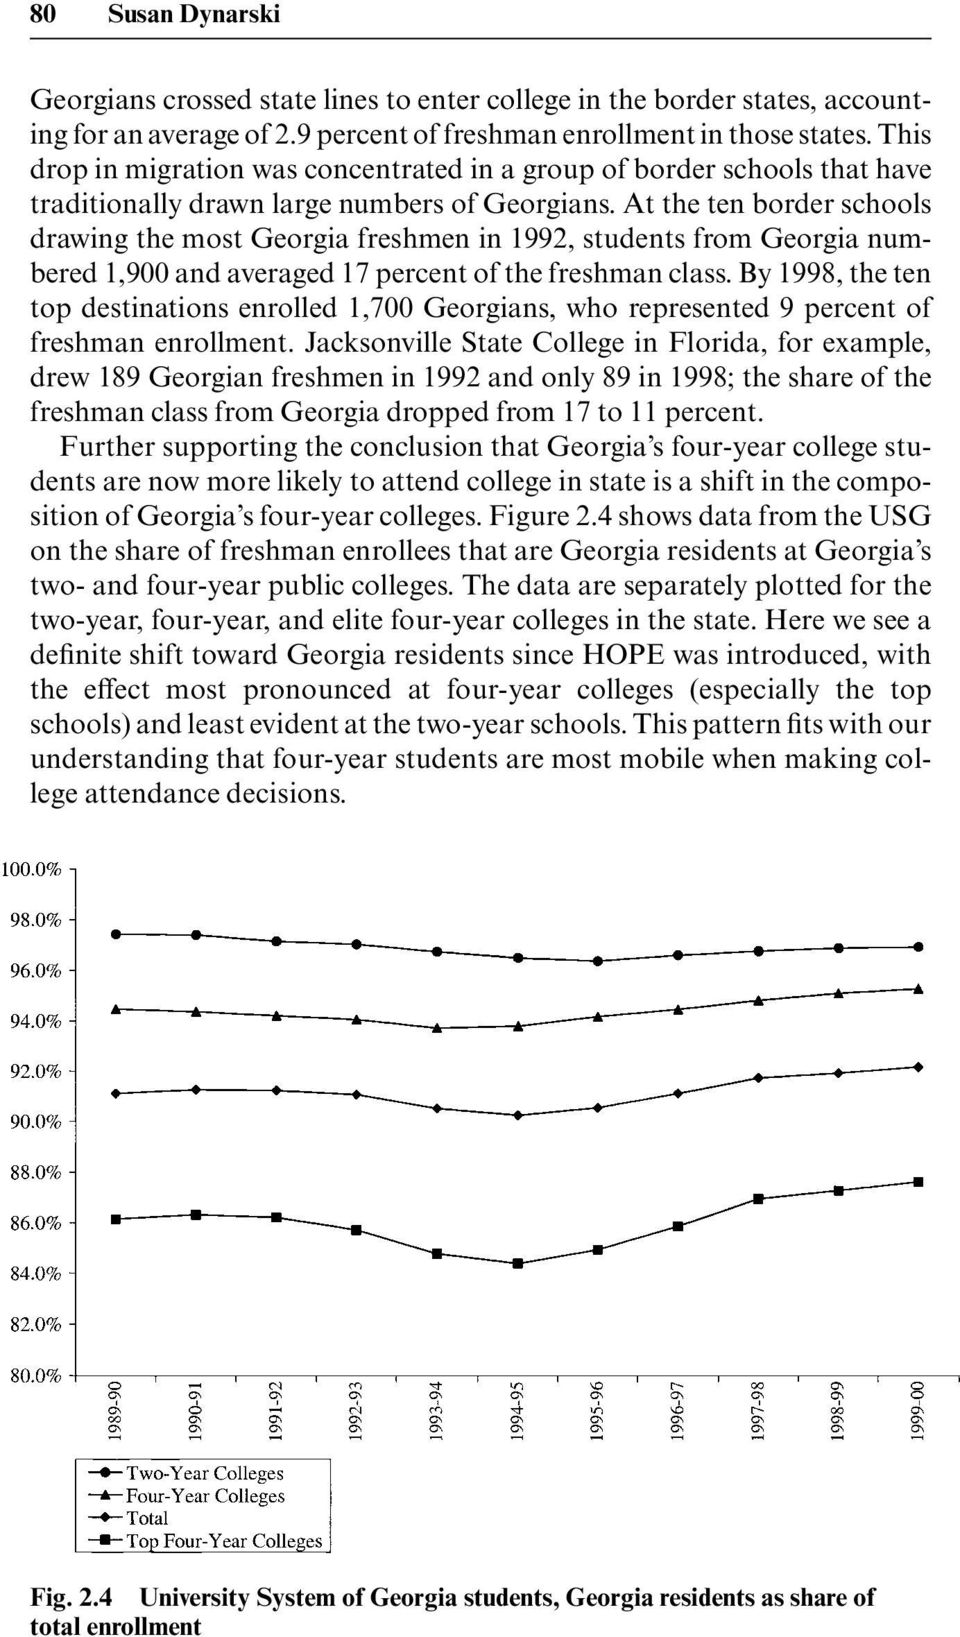 At the ten border schools drawing the most Georgia freshmen in 1992, students from Georgia numbered 1,900 and averaged 17 percent of the freshman class.